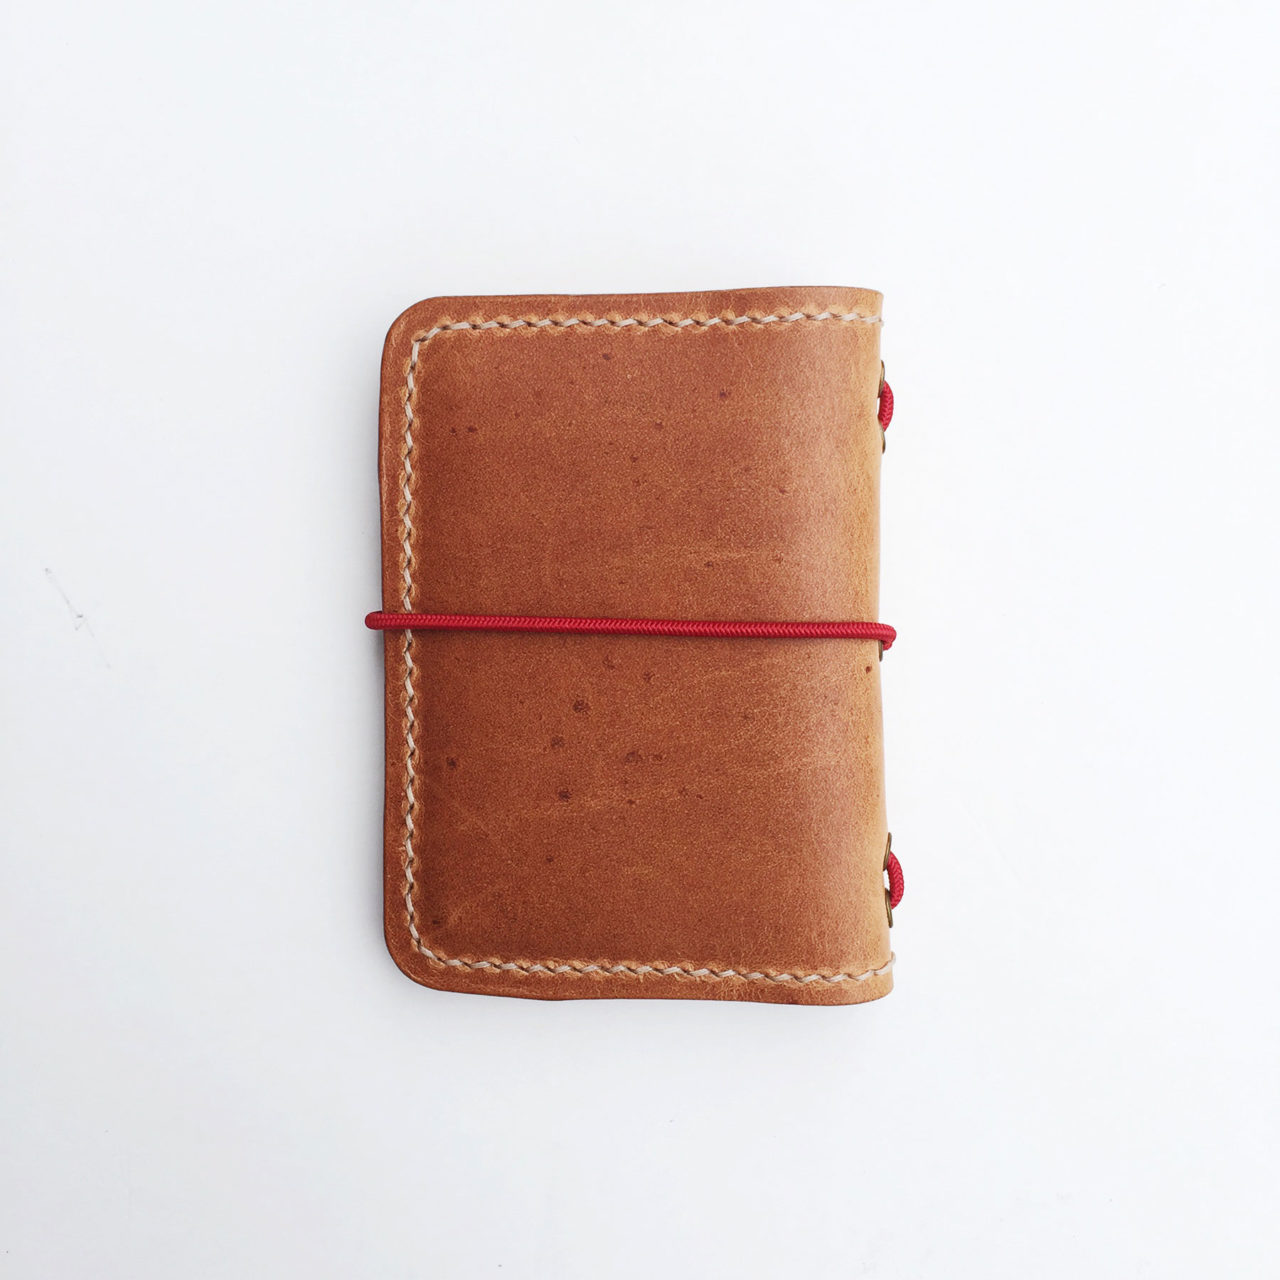 The-Level-Collective-leather-wallet-reverse-side-1280x1280.jpg